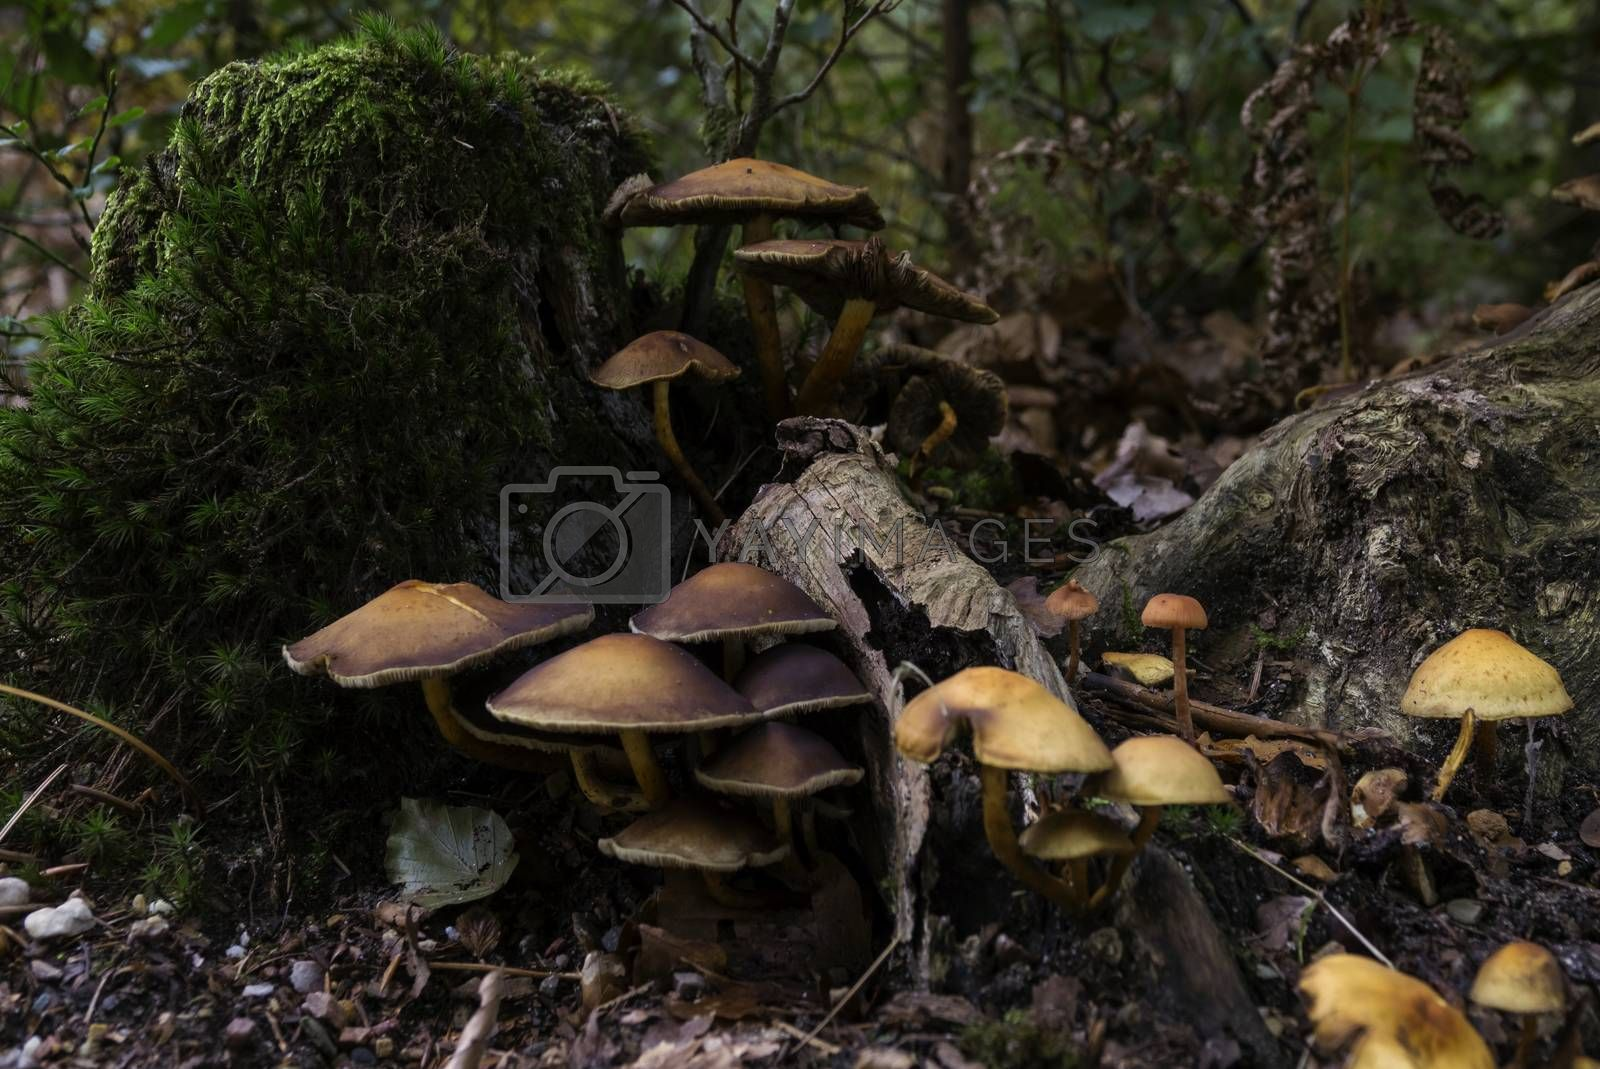 group of fungi in the forest during autum with the trees and leaves as background